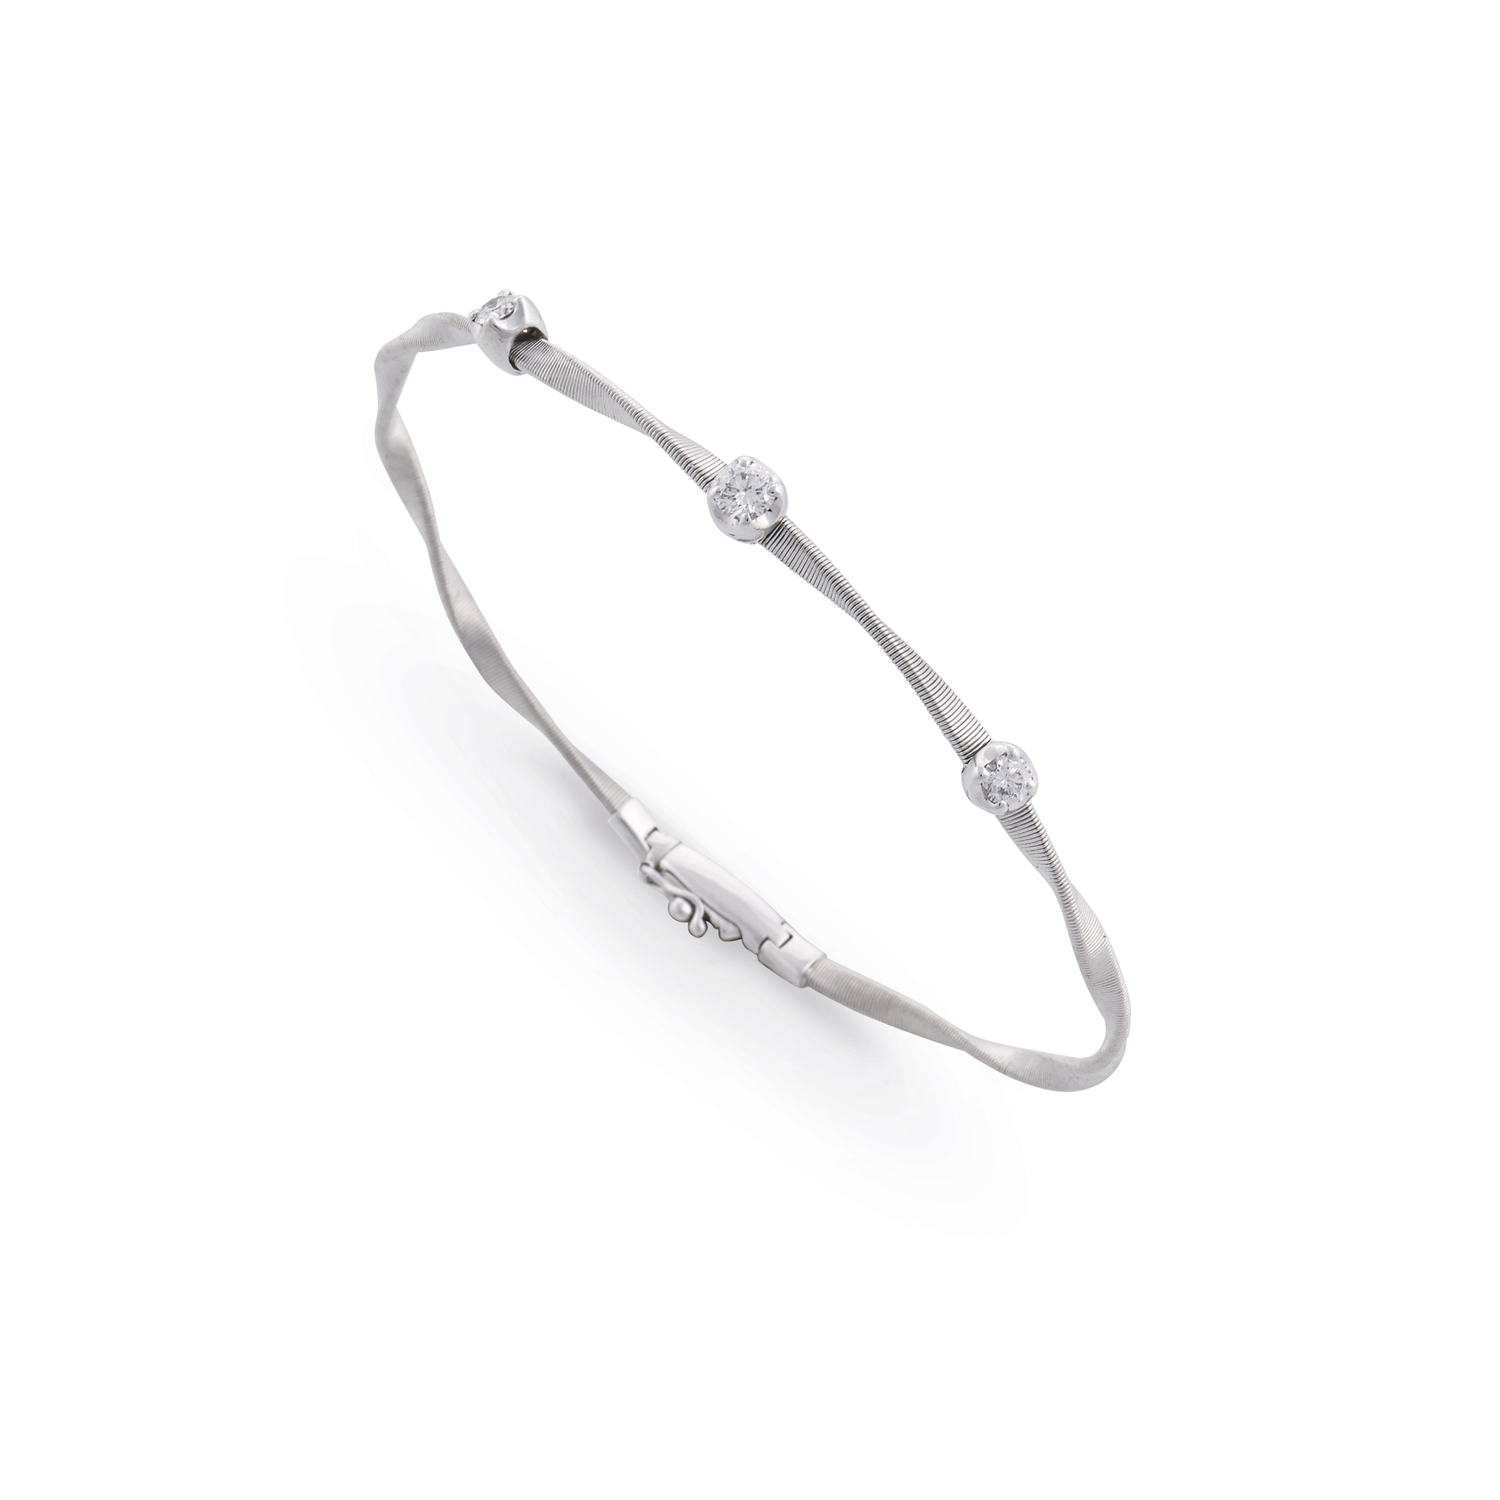 Marco Bicego Marrakech White Gold Single-Strand Diamond Bracelet